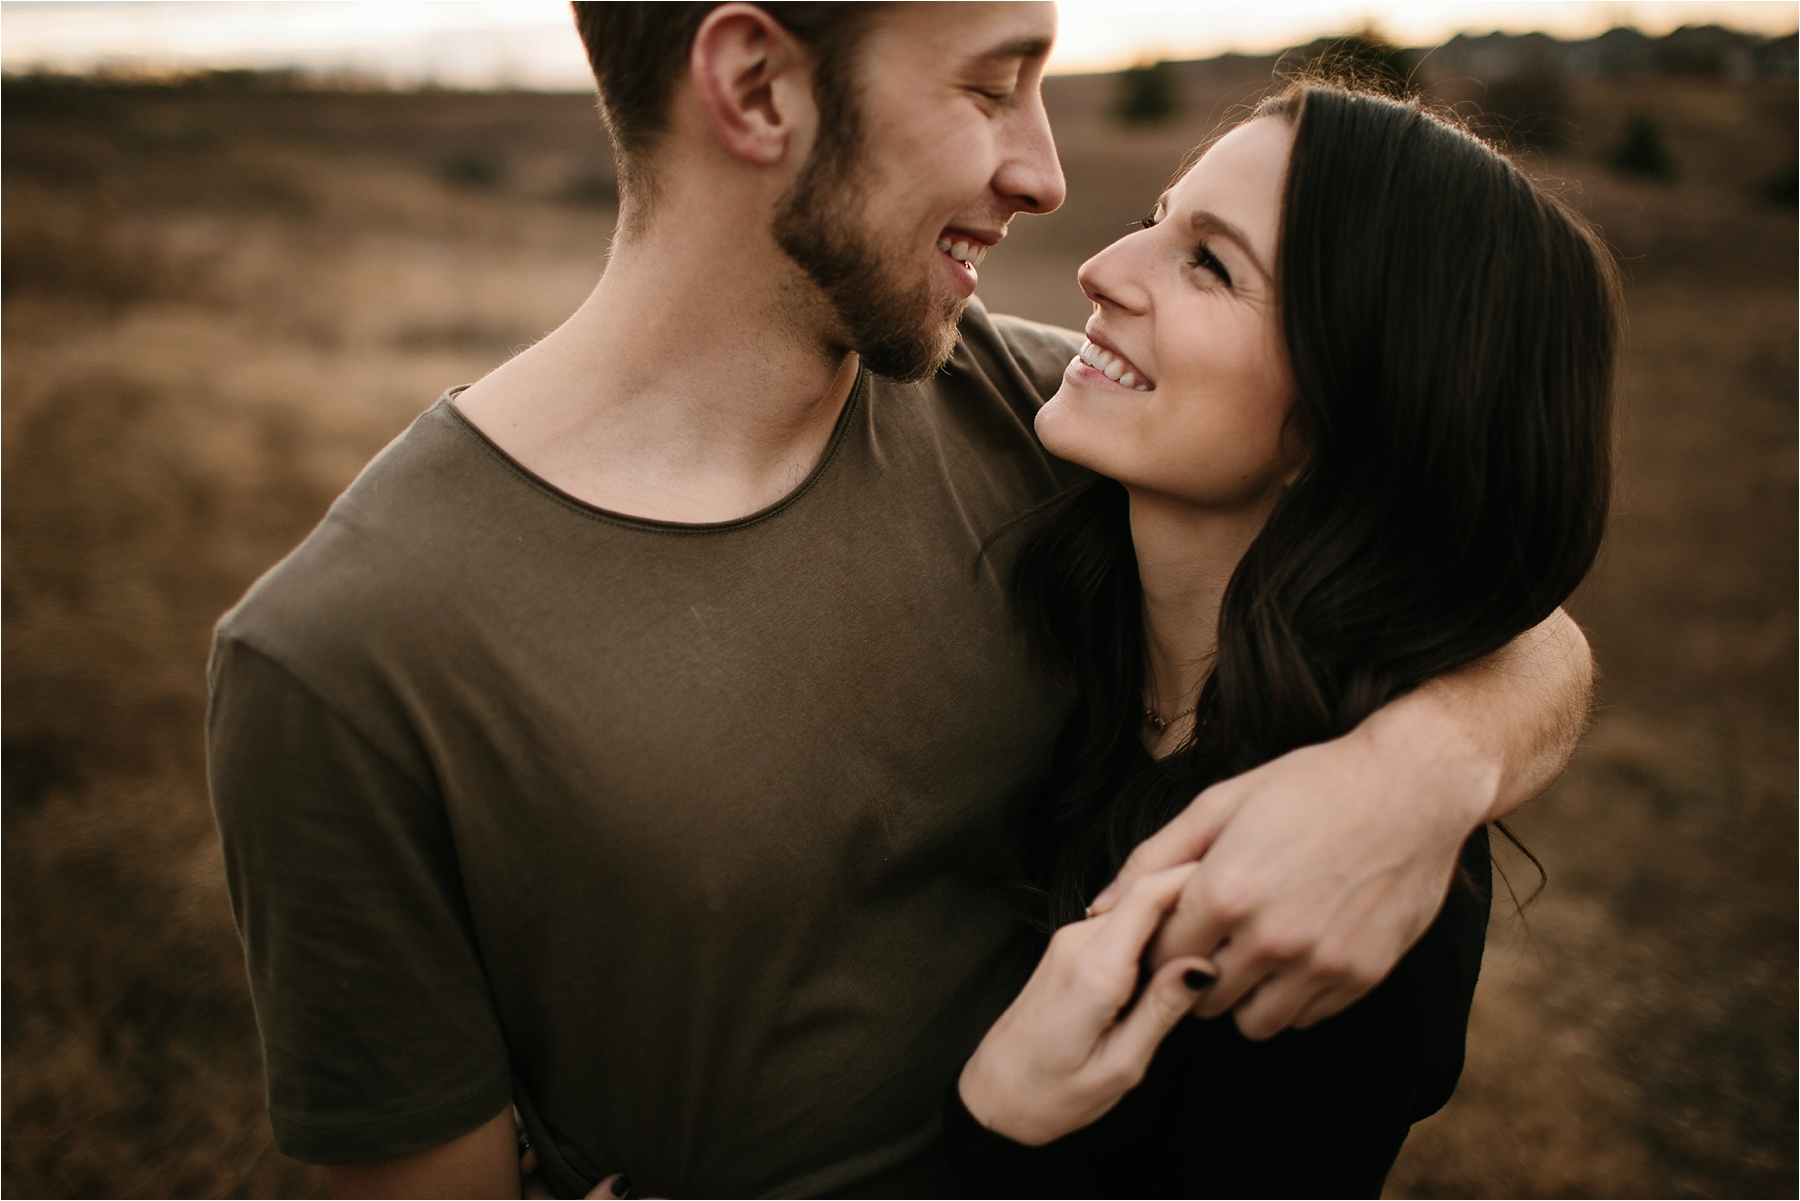 Trey + Phoebe __ a playful, intimate engagement session with dark_neutral outfit inspiration by North Texas Wedding Photographer Rachel Meagan Photography __ 24